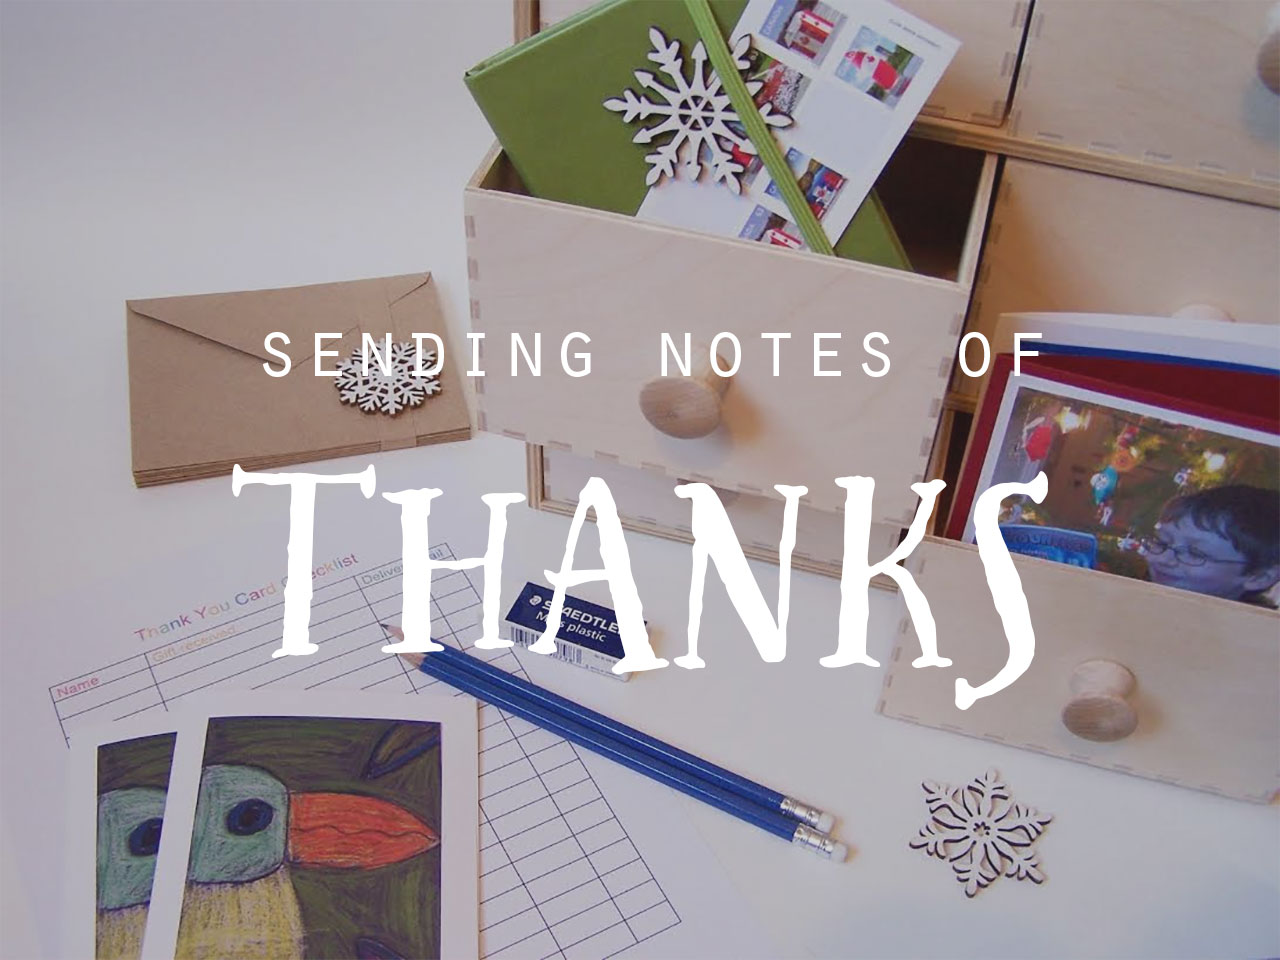 Sending Notes of Thanks